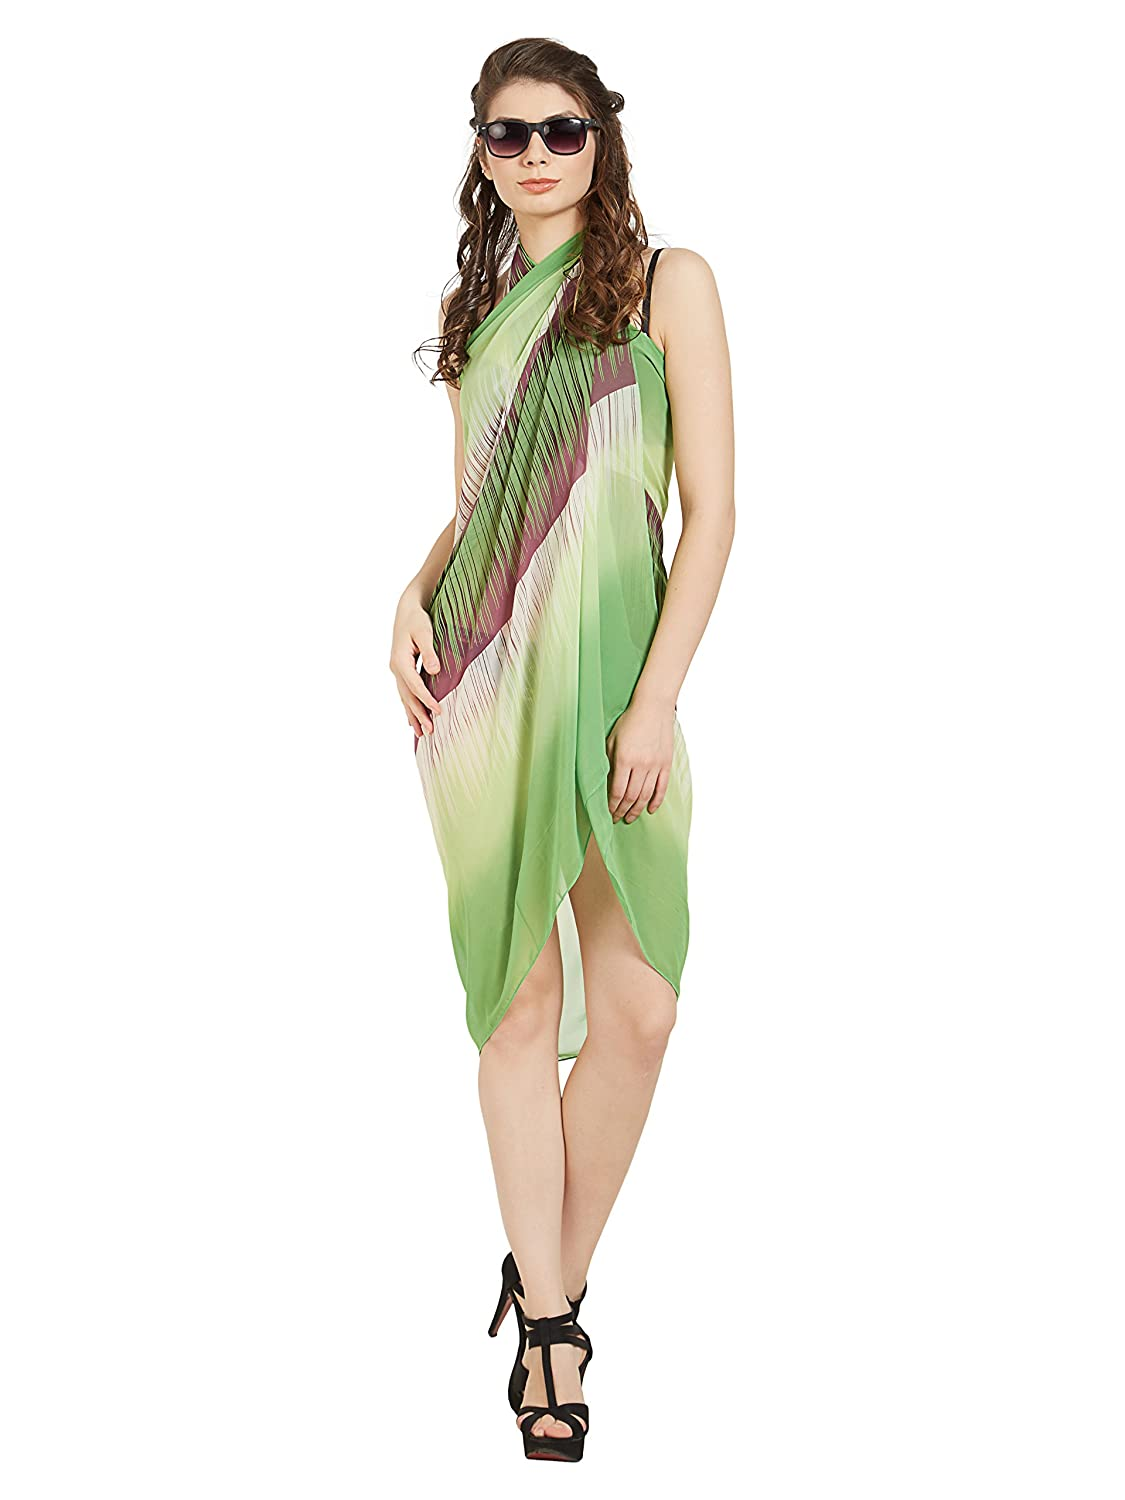 af4c4ad78d ELINA FASHION Sarongs Womens Faux Georgette Printed Sexy Swimsuit Beach  Bath Wrap Cover -up Summer (Style 1) at Amazon Women's Clothing store: